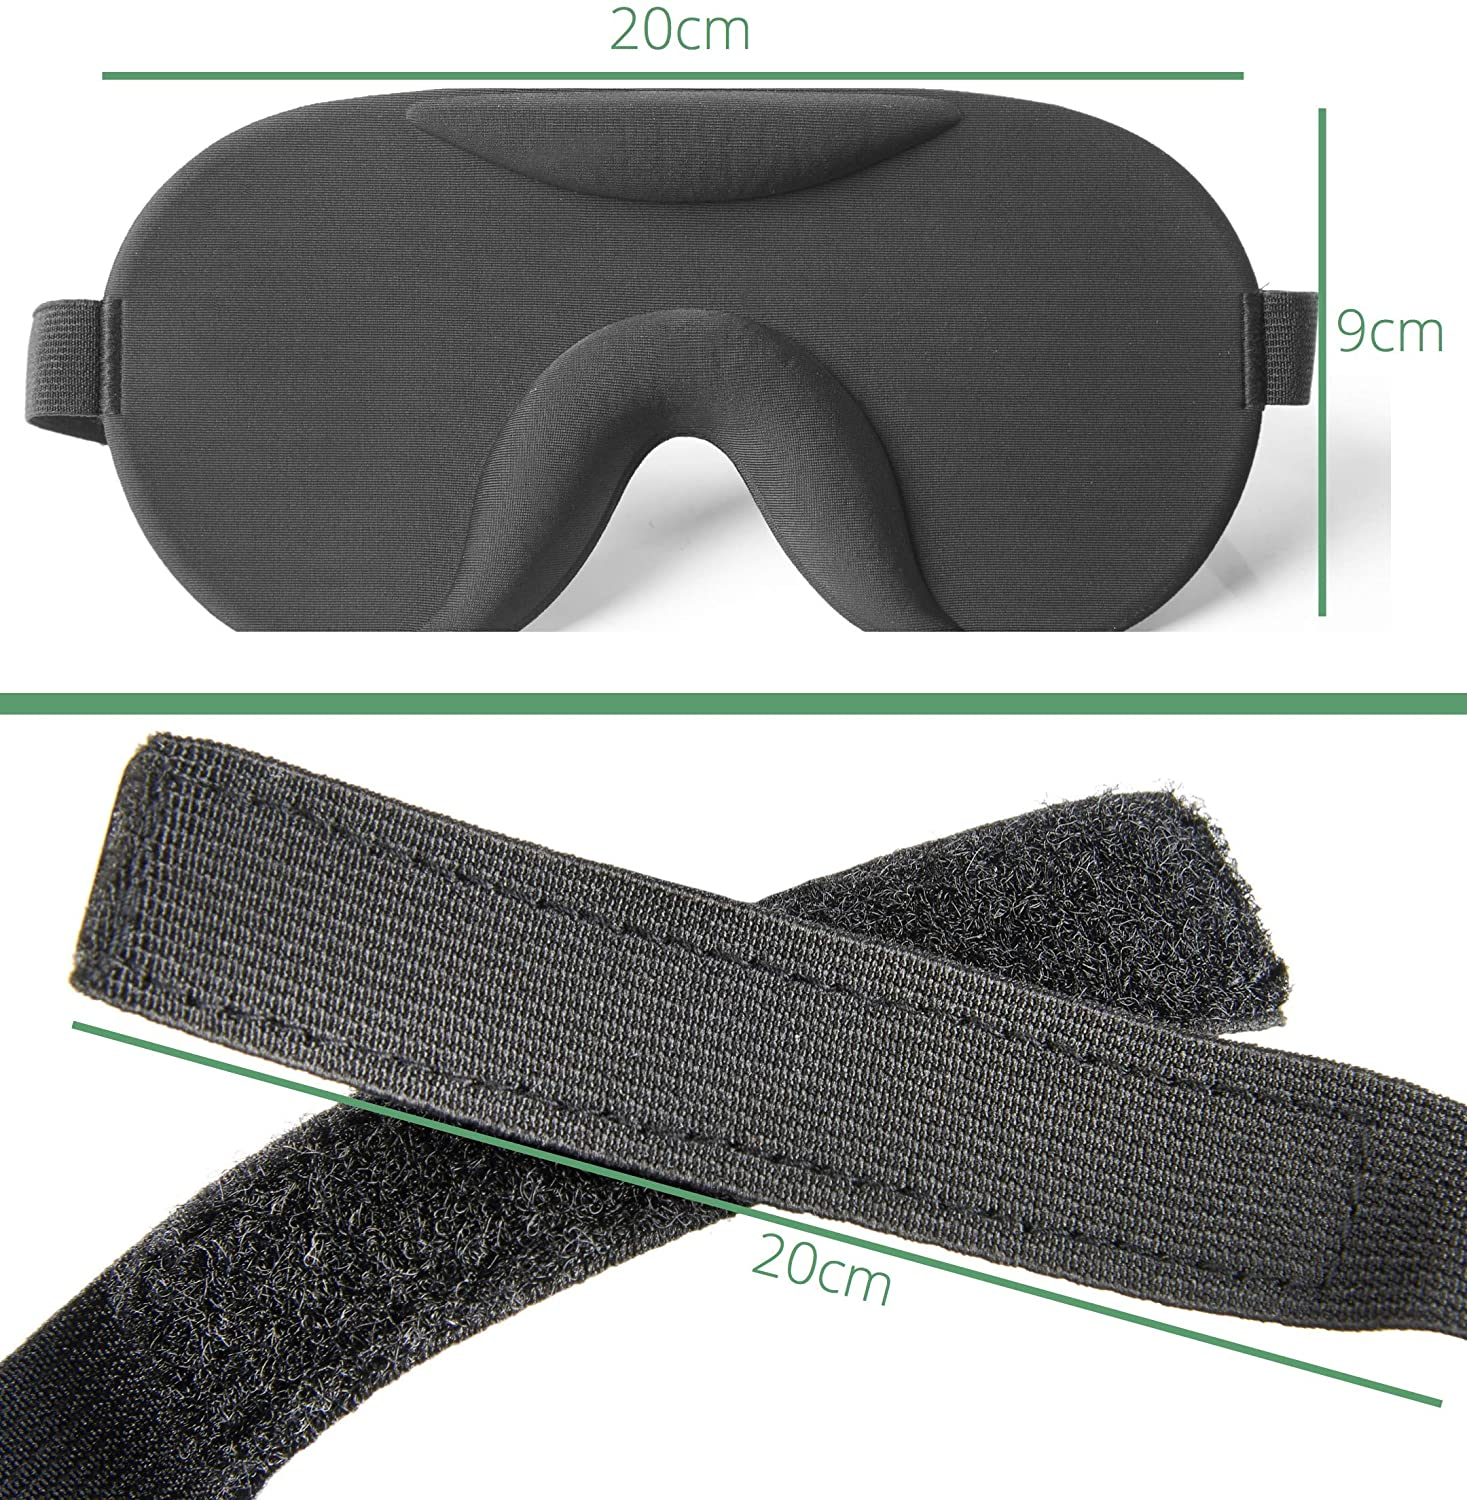 Soul Projekt Sleep Mask Lightweight & Comfortable Eye Mask for sleeping, Contoured Blackout Sleeping Blindfold Eye Mask For Sleeping, Travel, Shiftwork, Naps